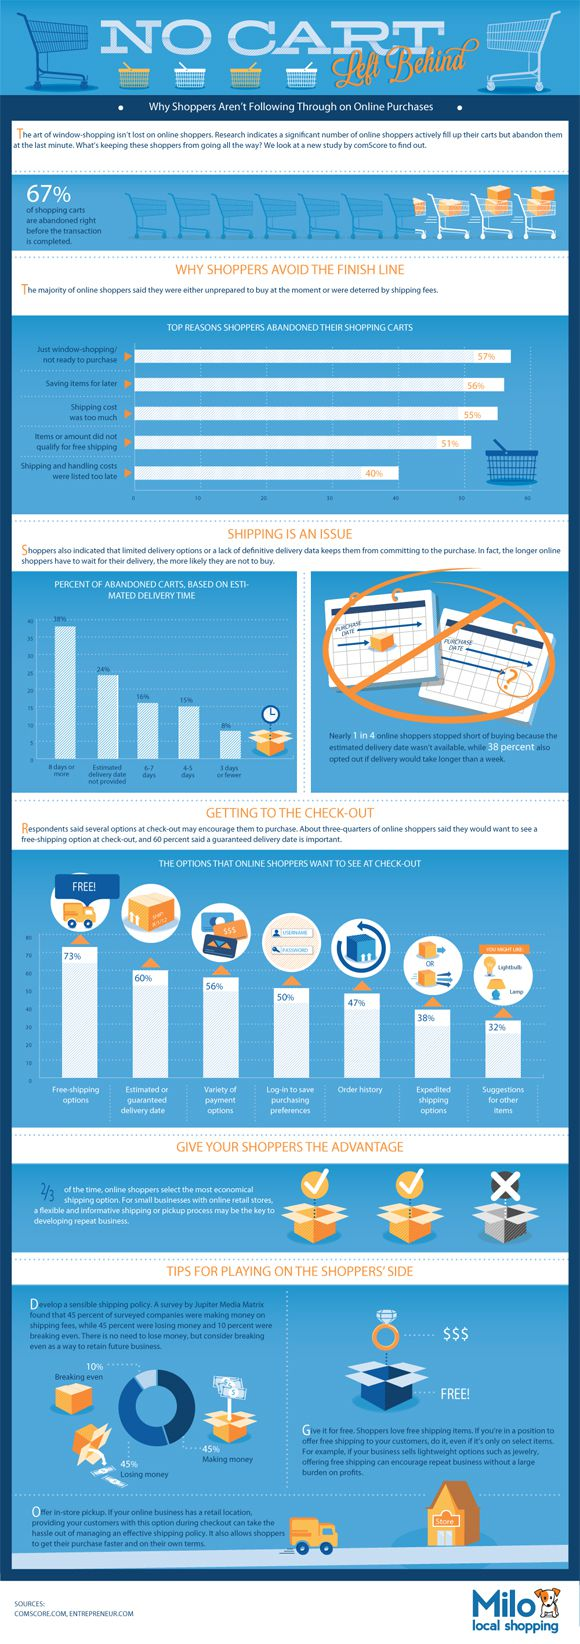 http://www.getelastic.com/wp-content/uploads/cart-abandonment-infographic.jpg